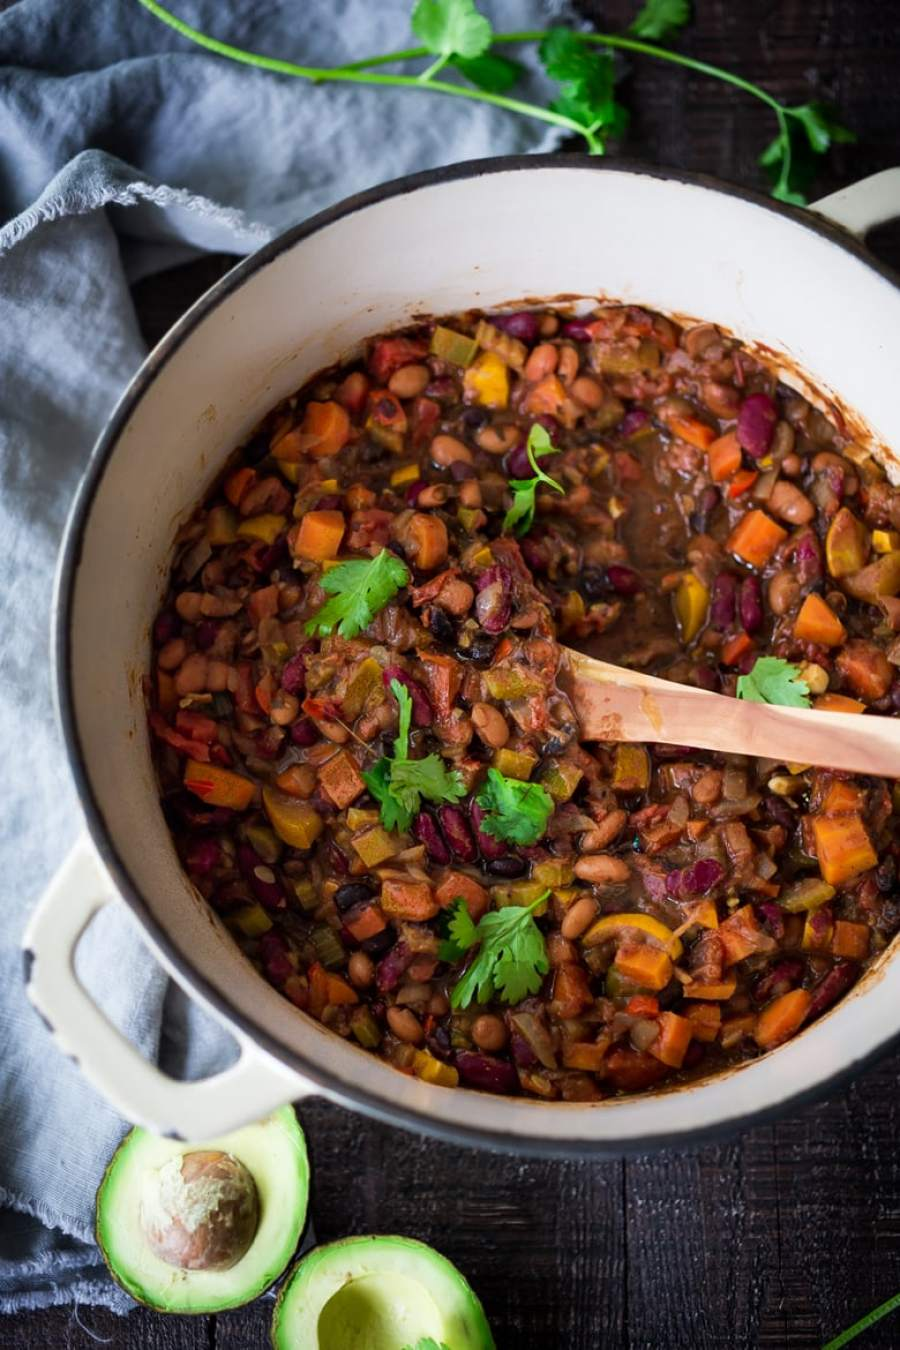 Clean out your fridge, QUICK VEGAN CHILI - loaded up with healthy veggies and beans, this deep and complex recipe will convert meat-eaters! Make a big batch on Sunday, then serve it during the busy workweek! | www.feastingathome.com